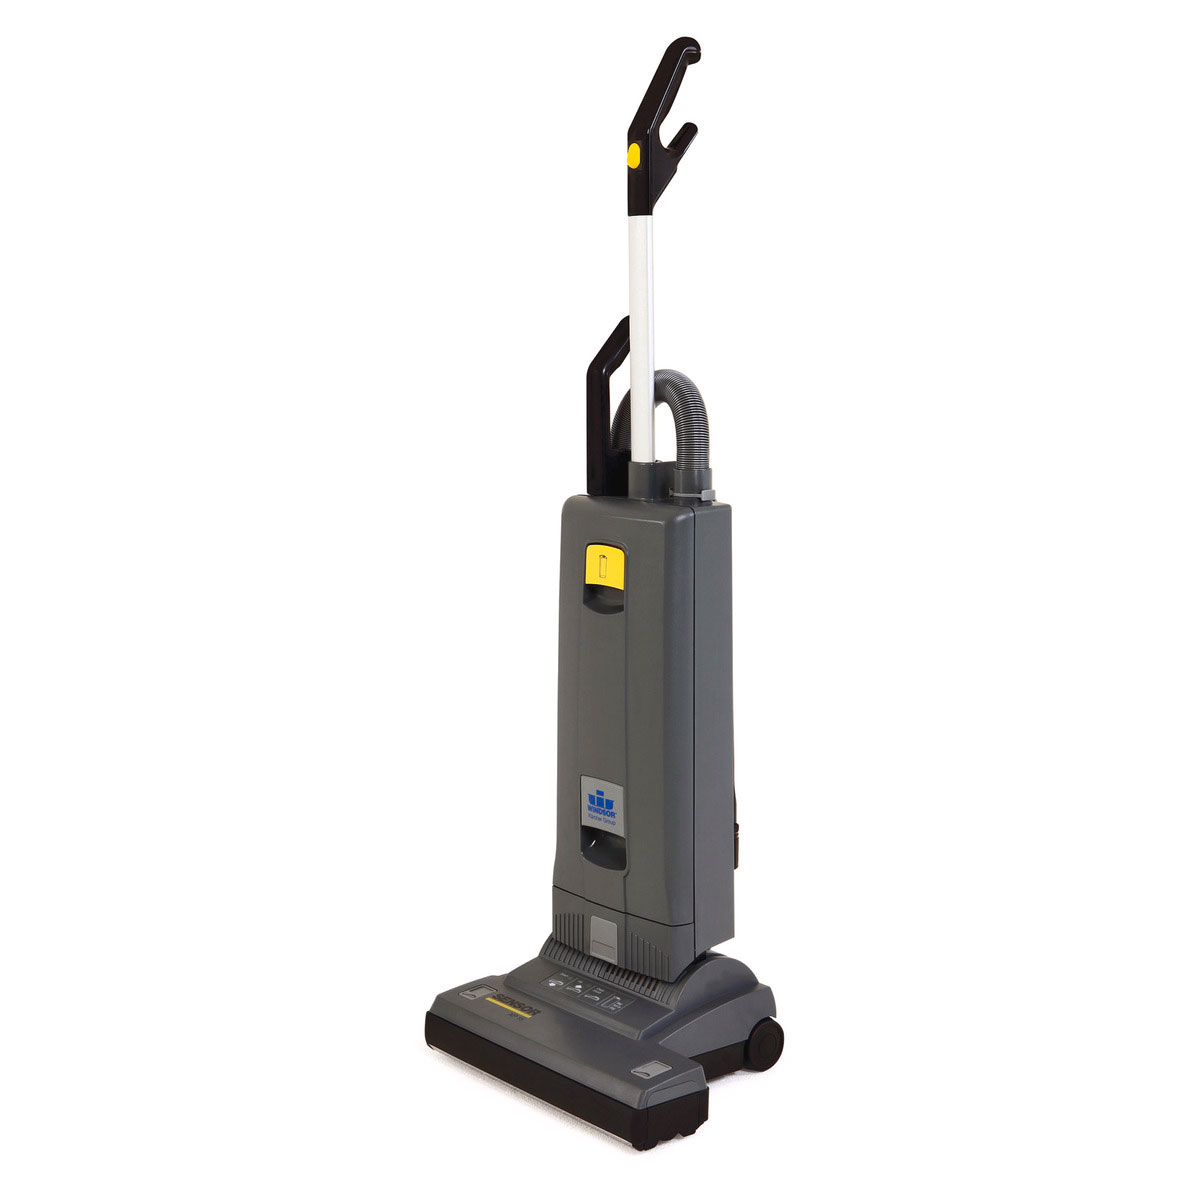 Windsor Sensor XP 15 Upright Vacuum Cleaner w tools 15inch 1.012-027.0 Freight Included 3Yr Repair Protection XP15 1.012-612.0